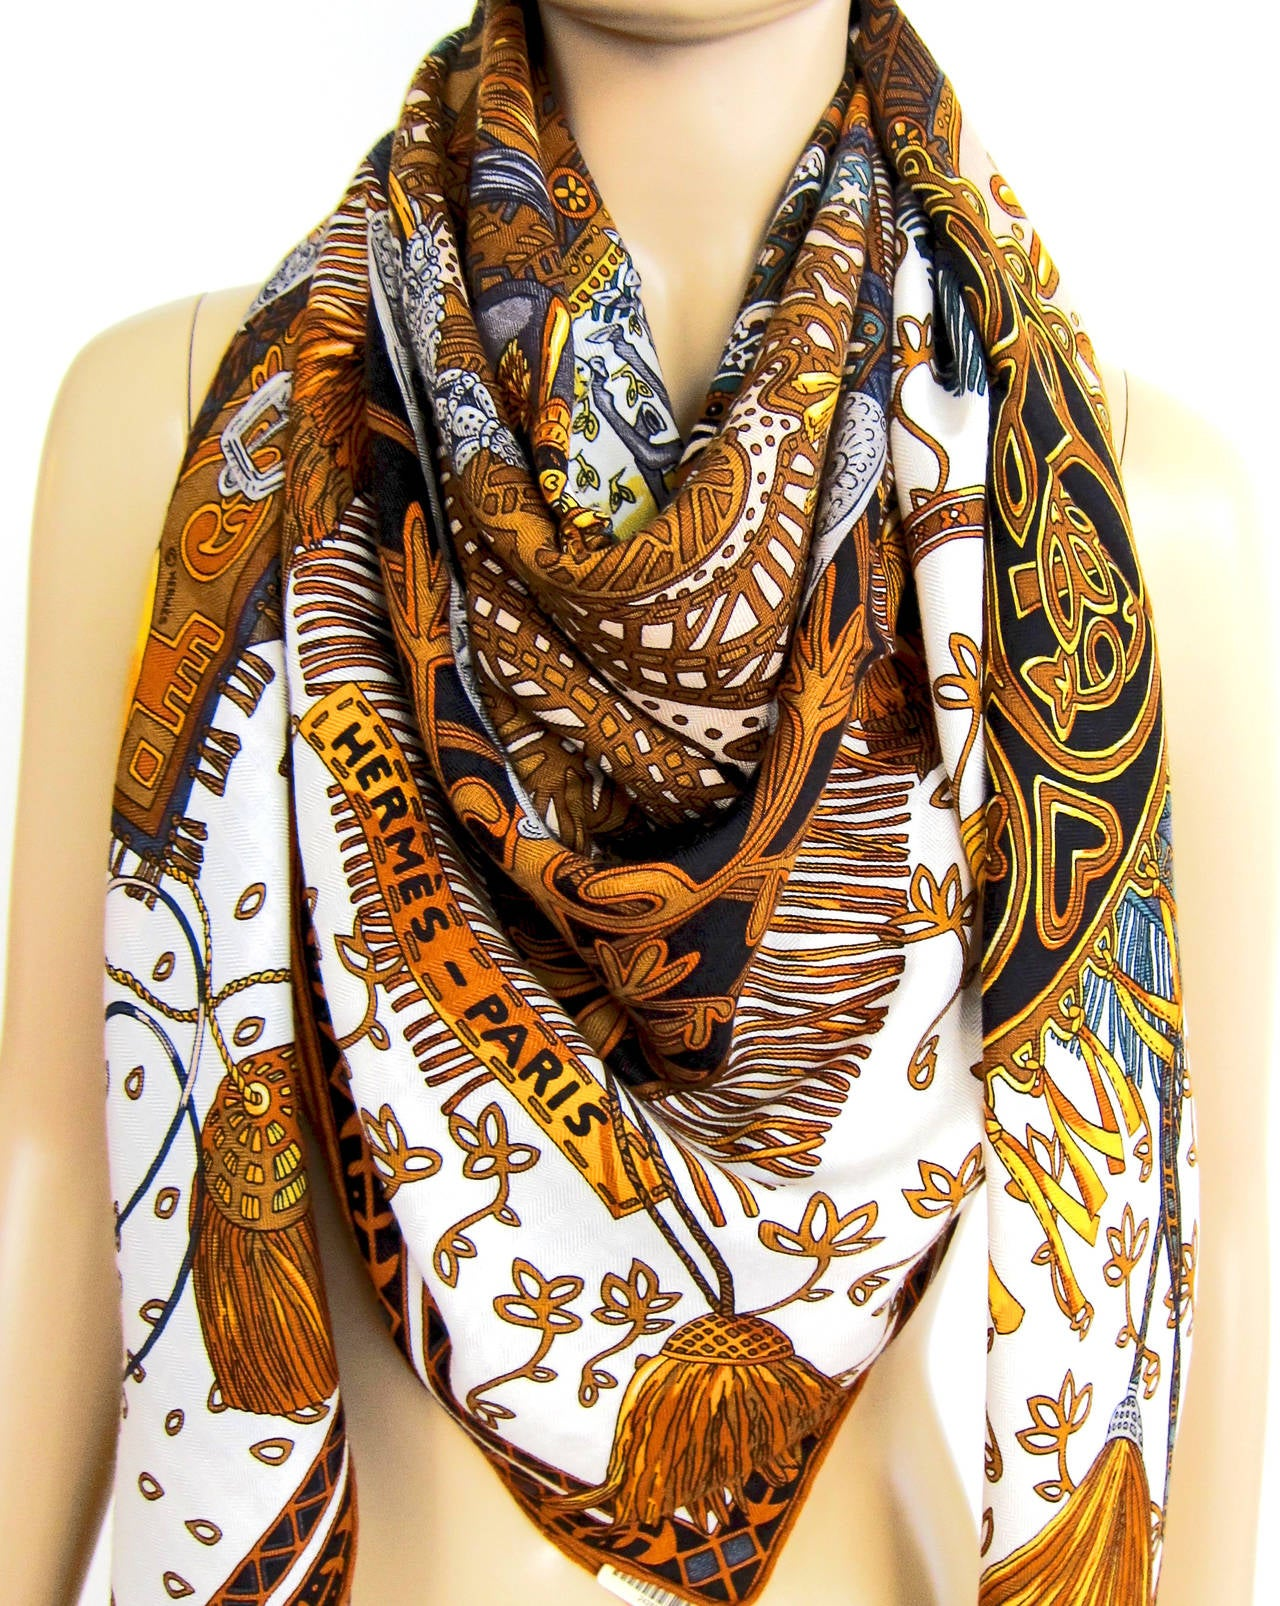 Hermes Cashmere Shawl Sale Makes Looking Stylish Easy On ...